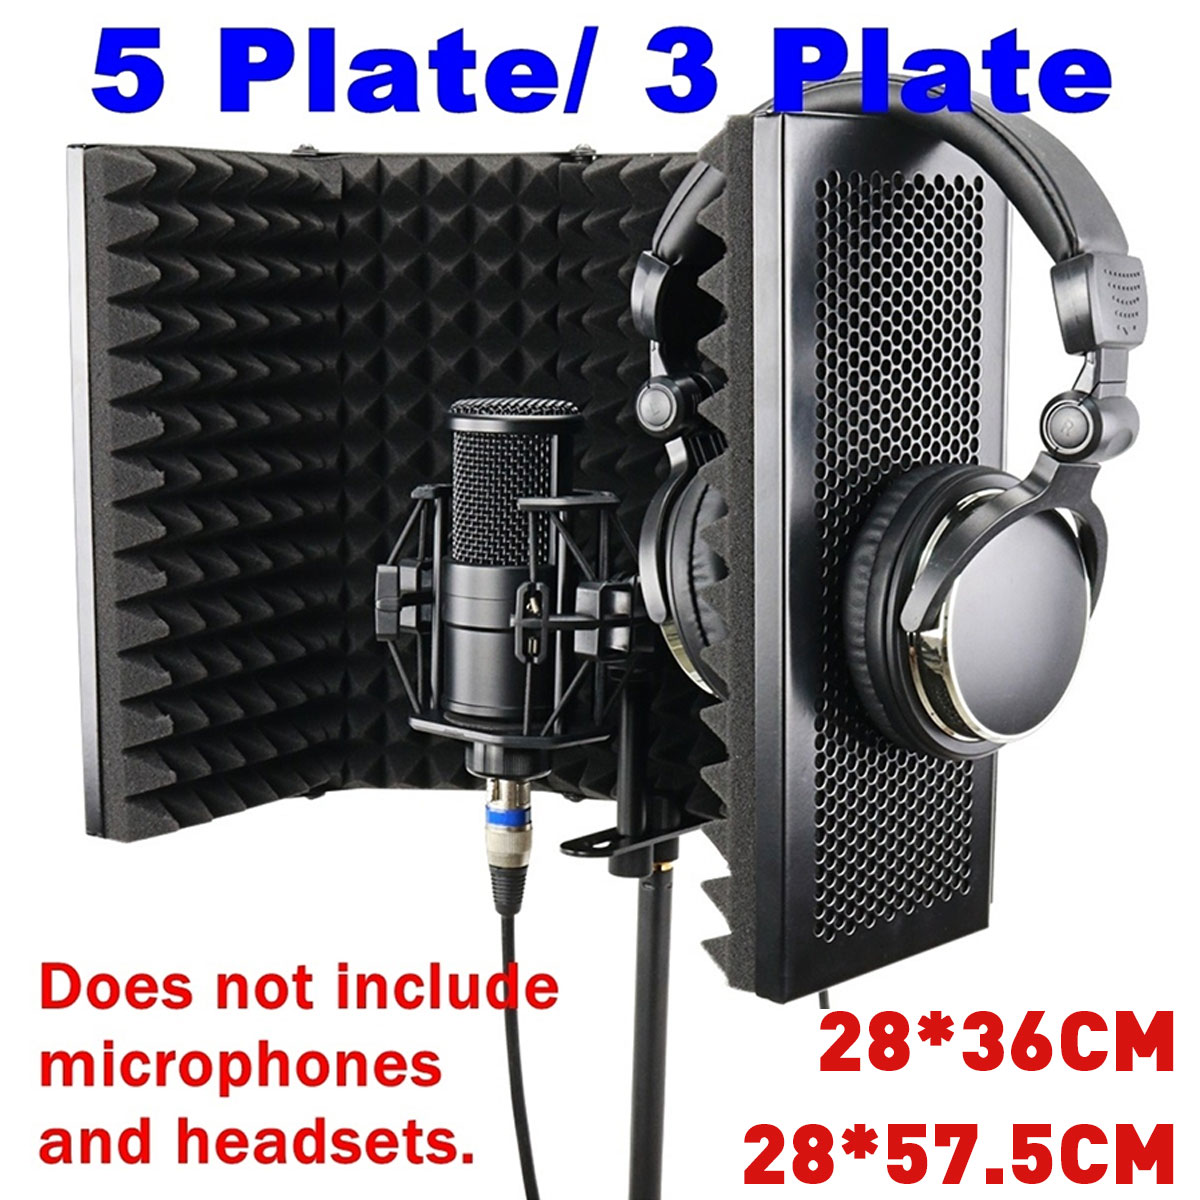 3 Plate Foldable Recording Microphone Wind Screen Board Sound-absorbing Cover Microphone Sound Insolation Shield Screen Sound